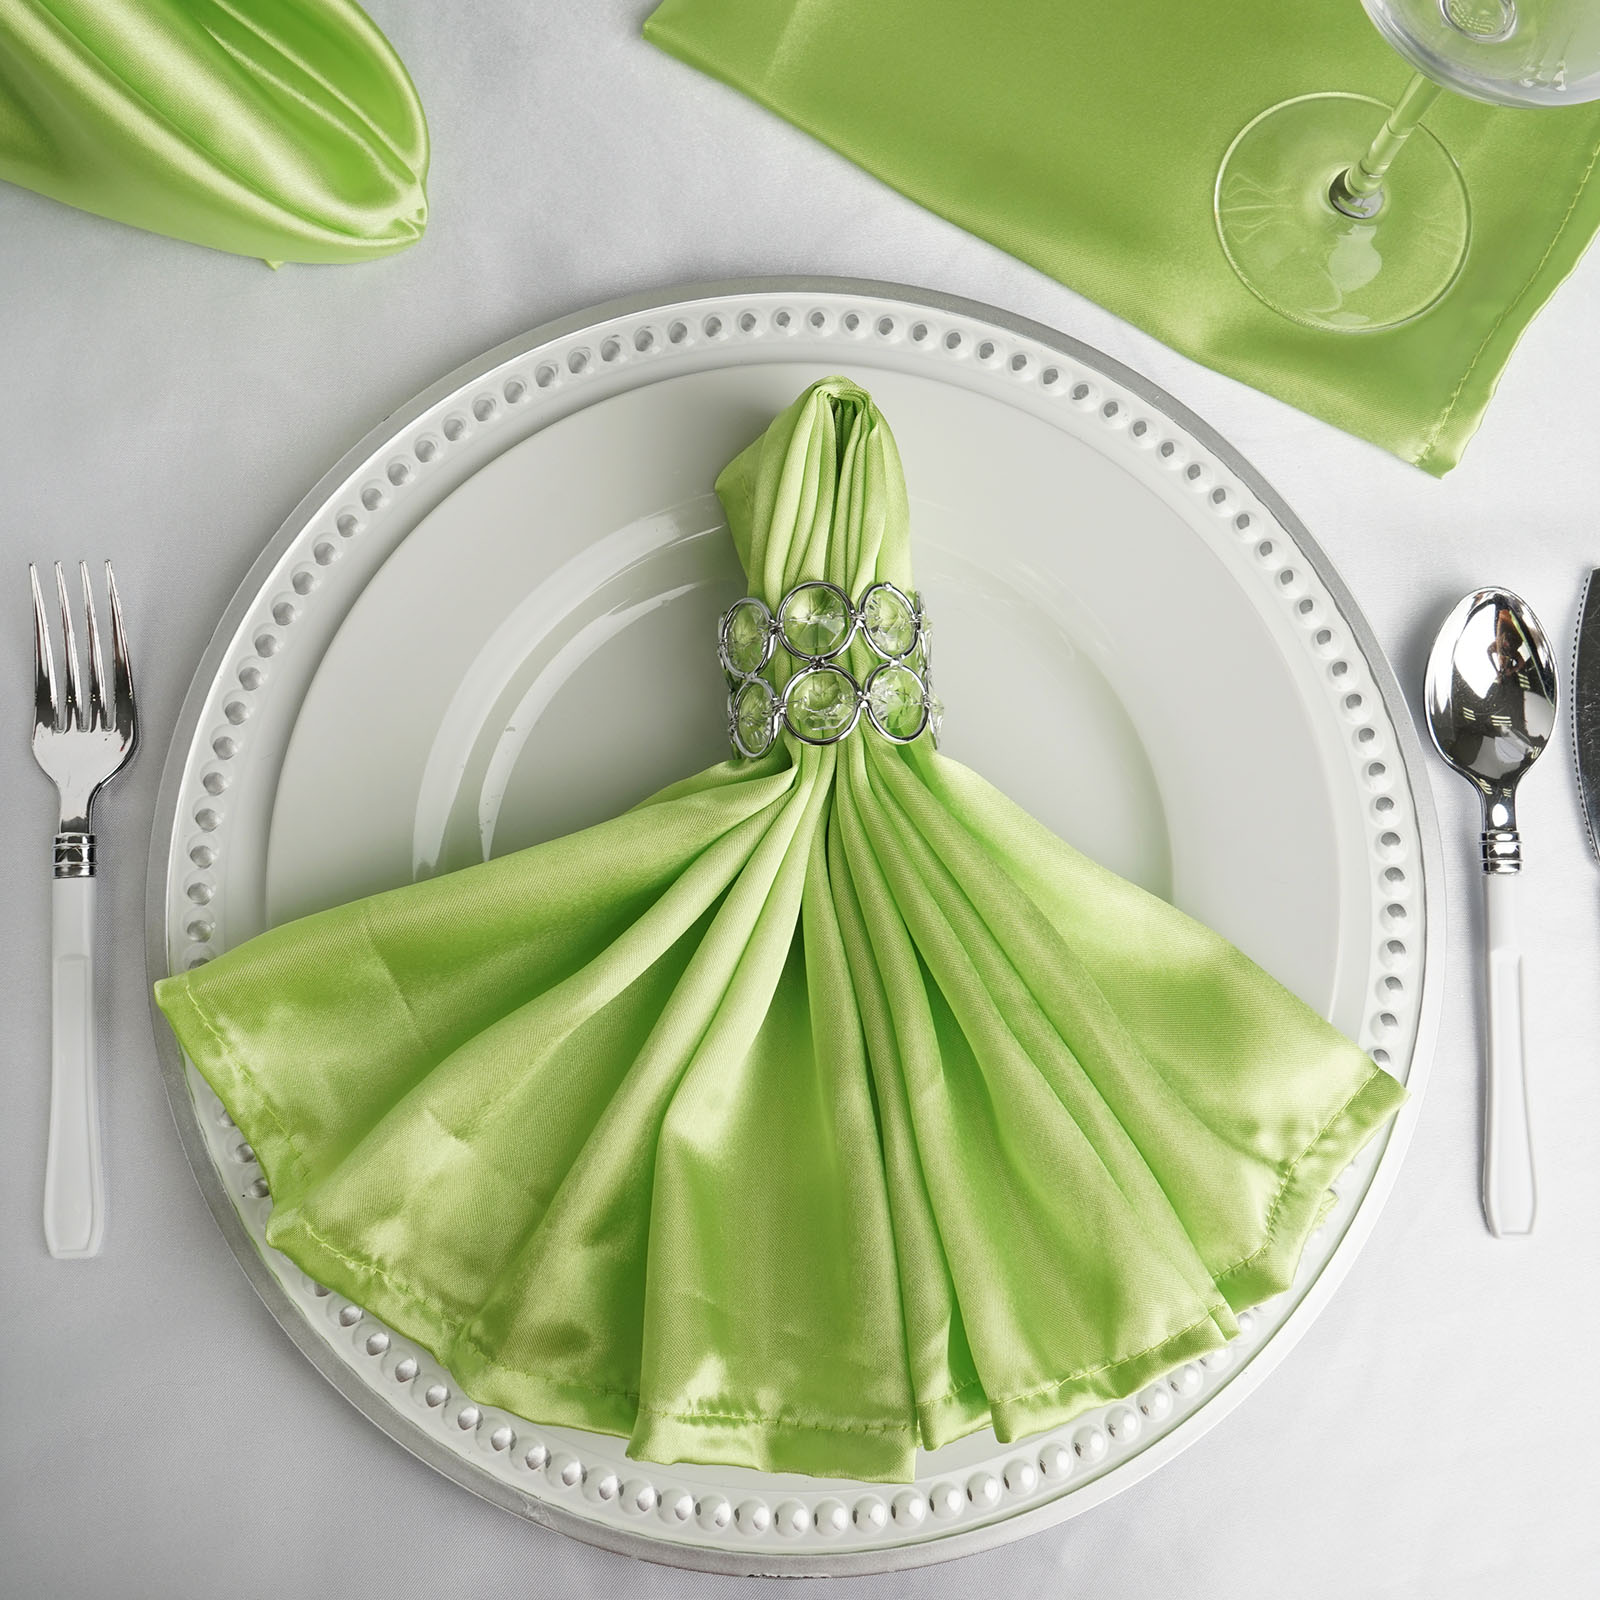 BalsaCircle 5 pcs 20 inch Satin Napkins Table Top Decorations for Party Wedding Events Restaurant Catering Dinner Home